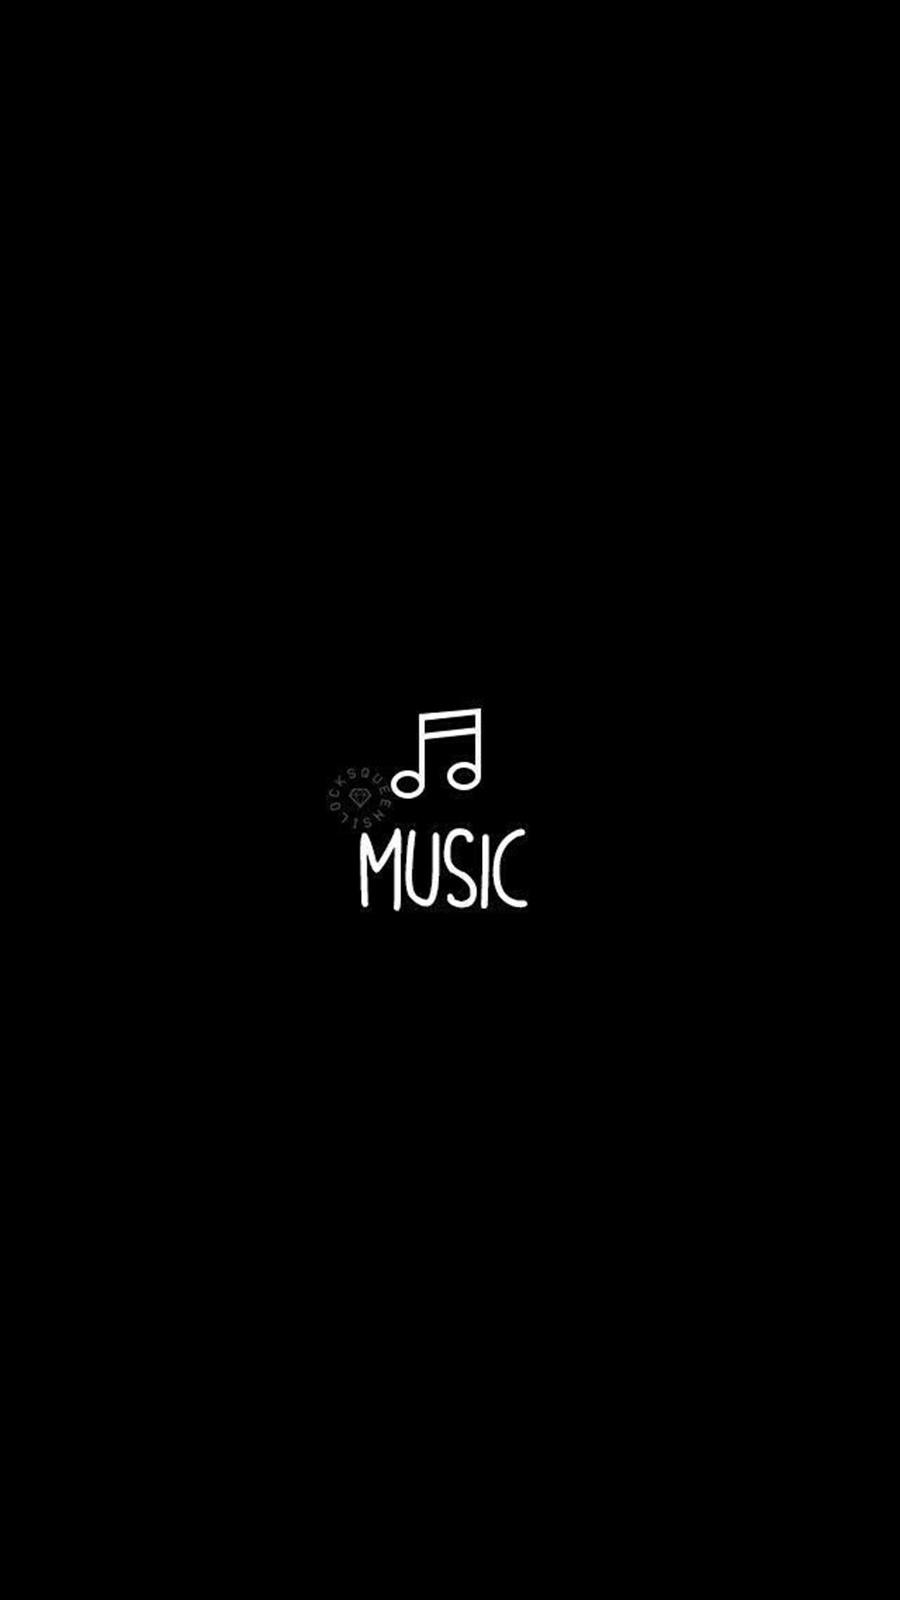 Music Word Wallpapers Free Download For Youe Device